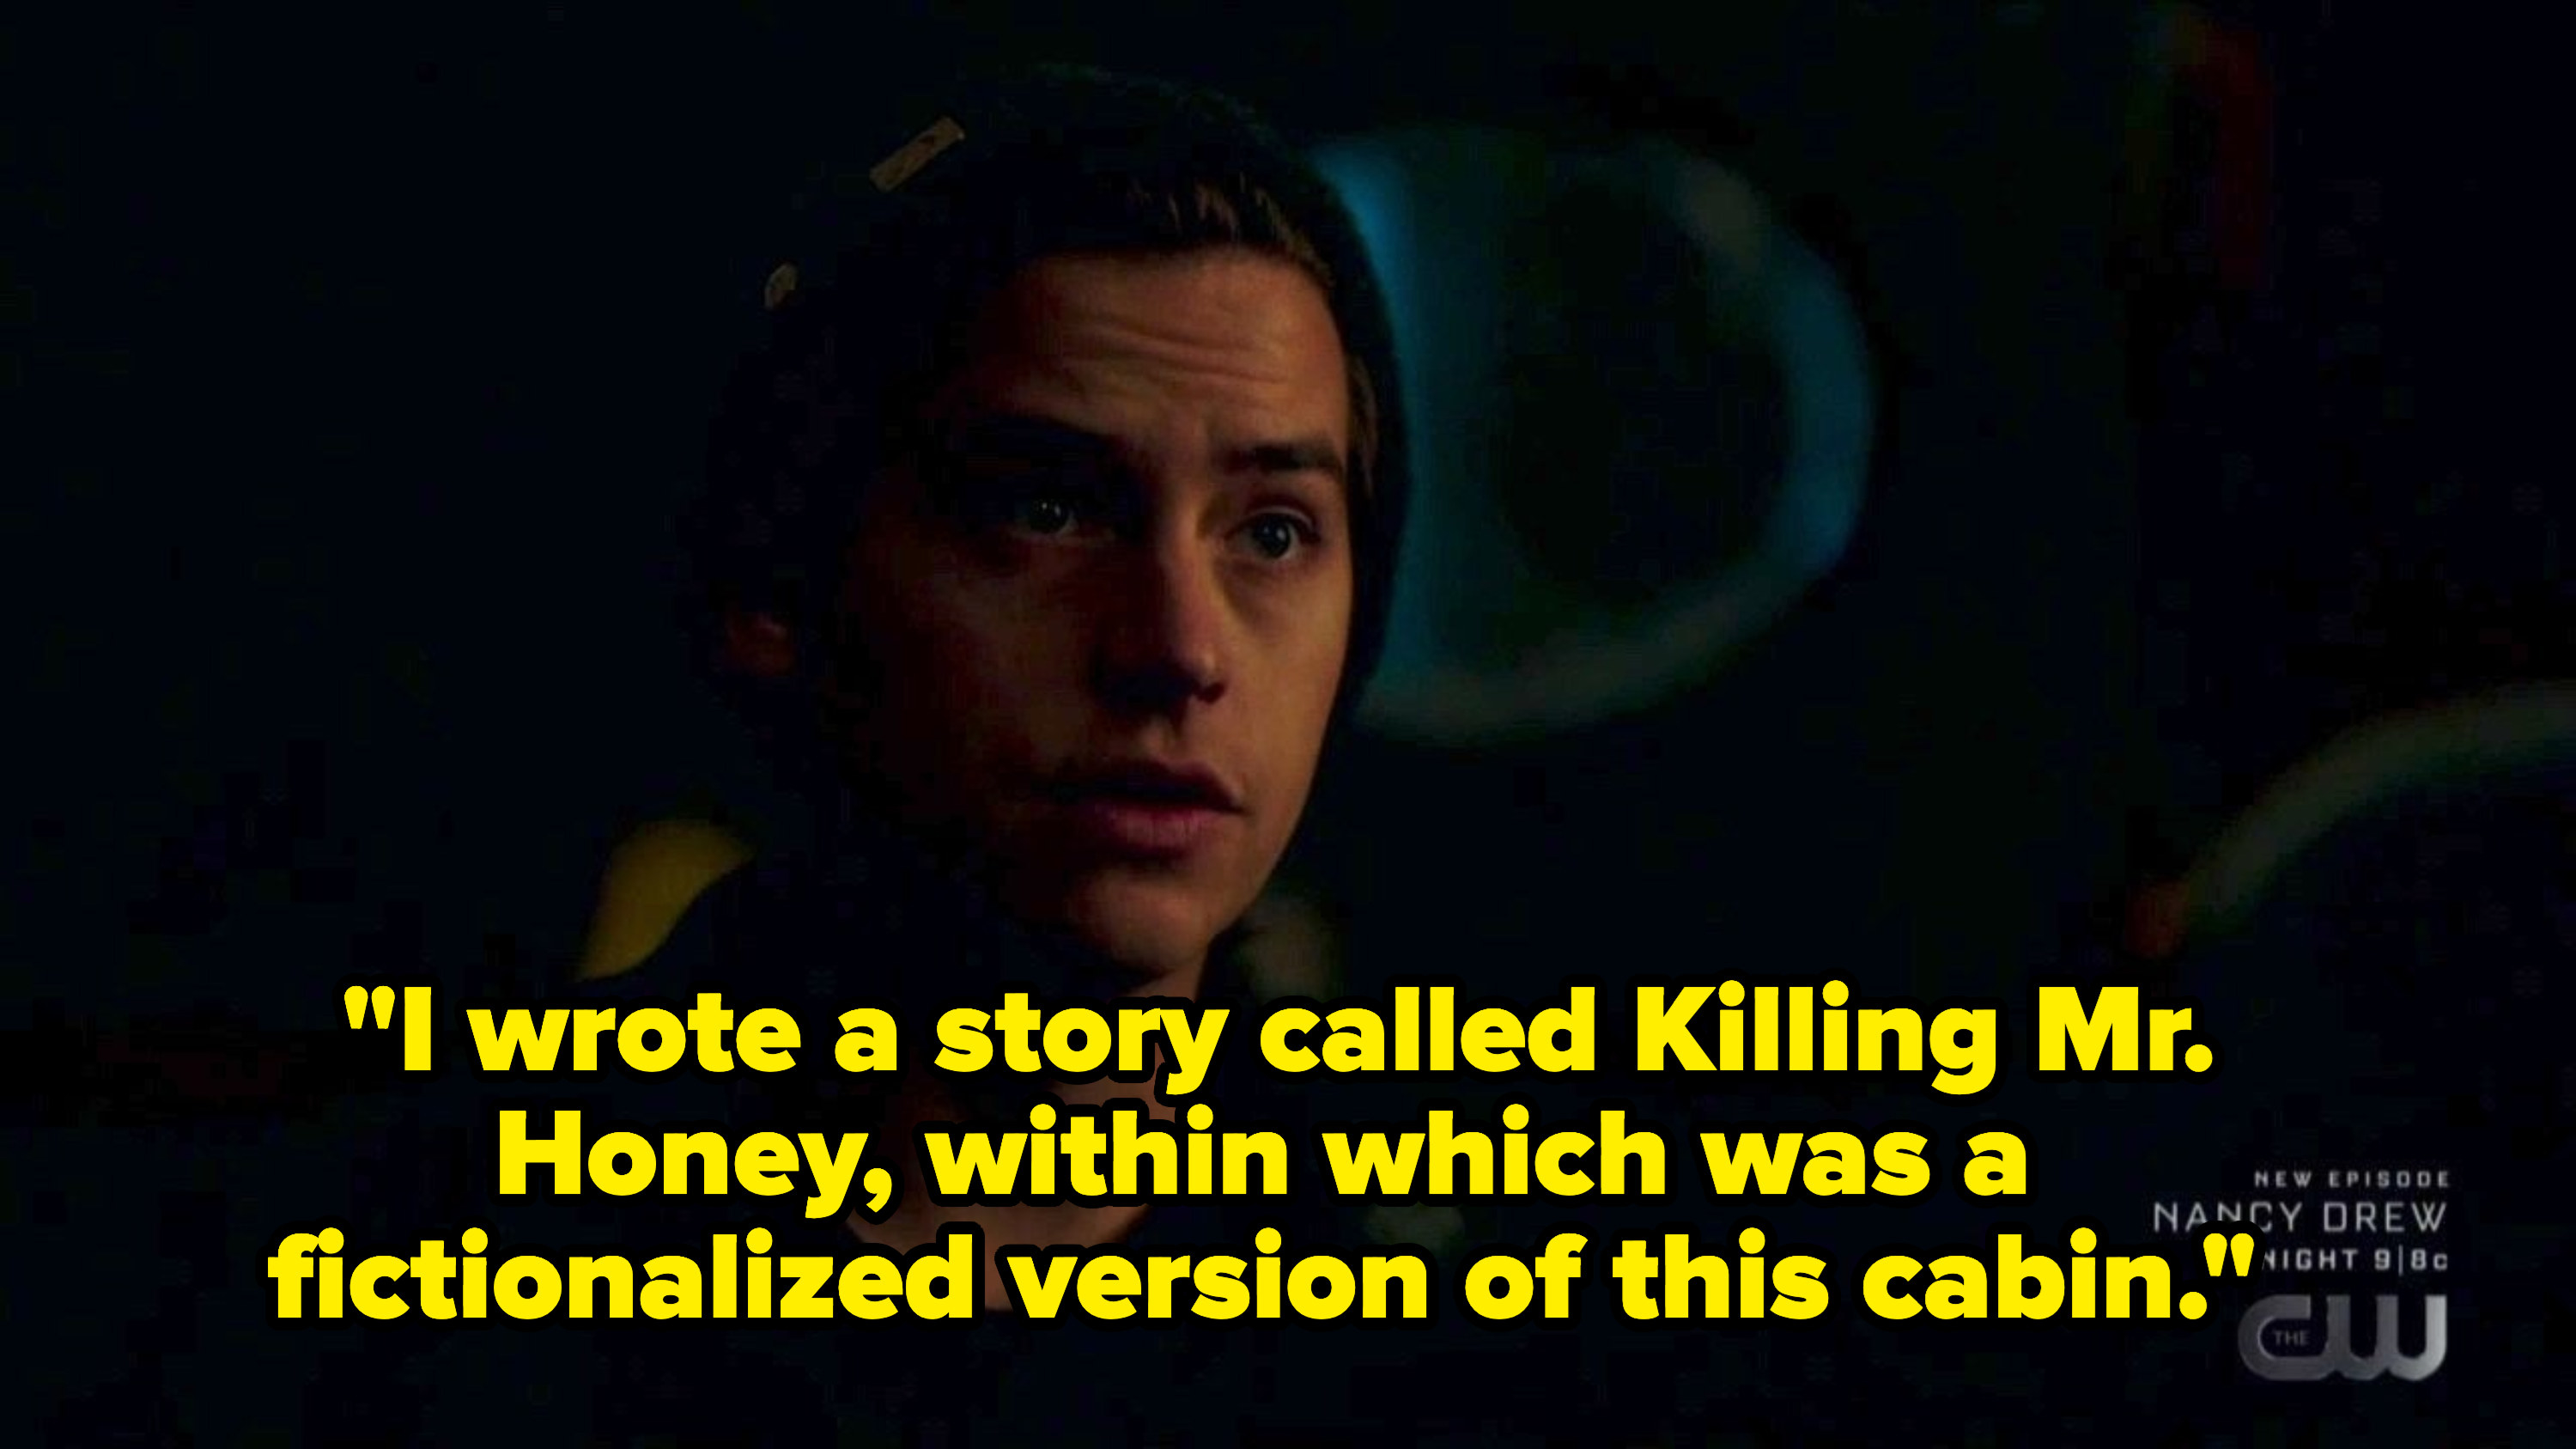 Jughead talking about writing a fictionalize story about killing mr. honey